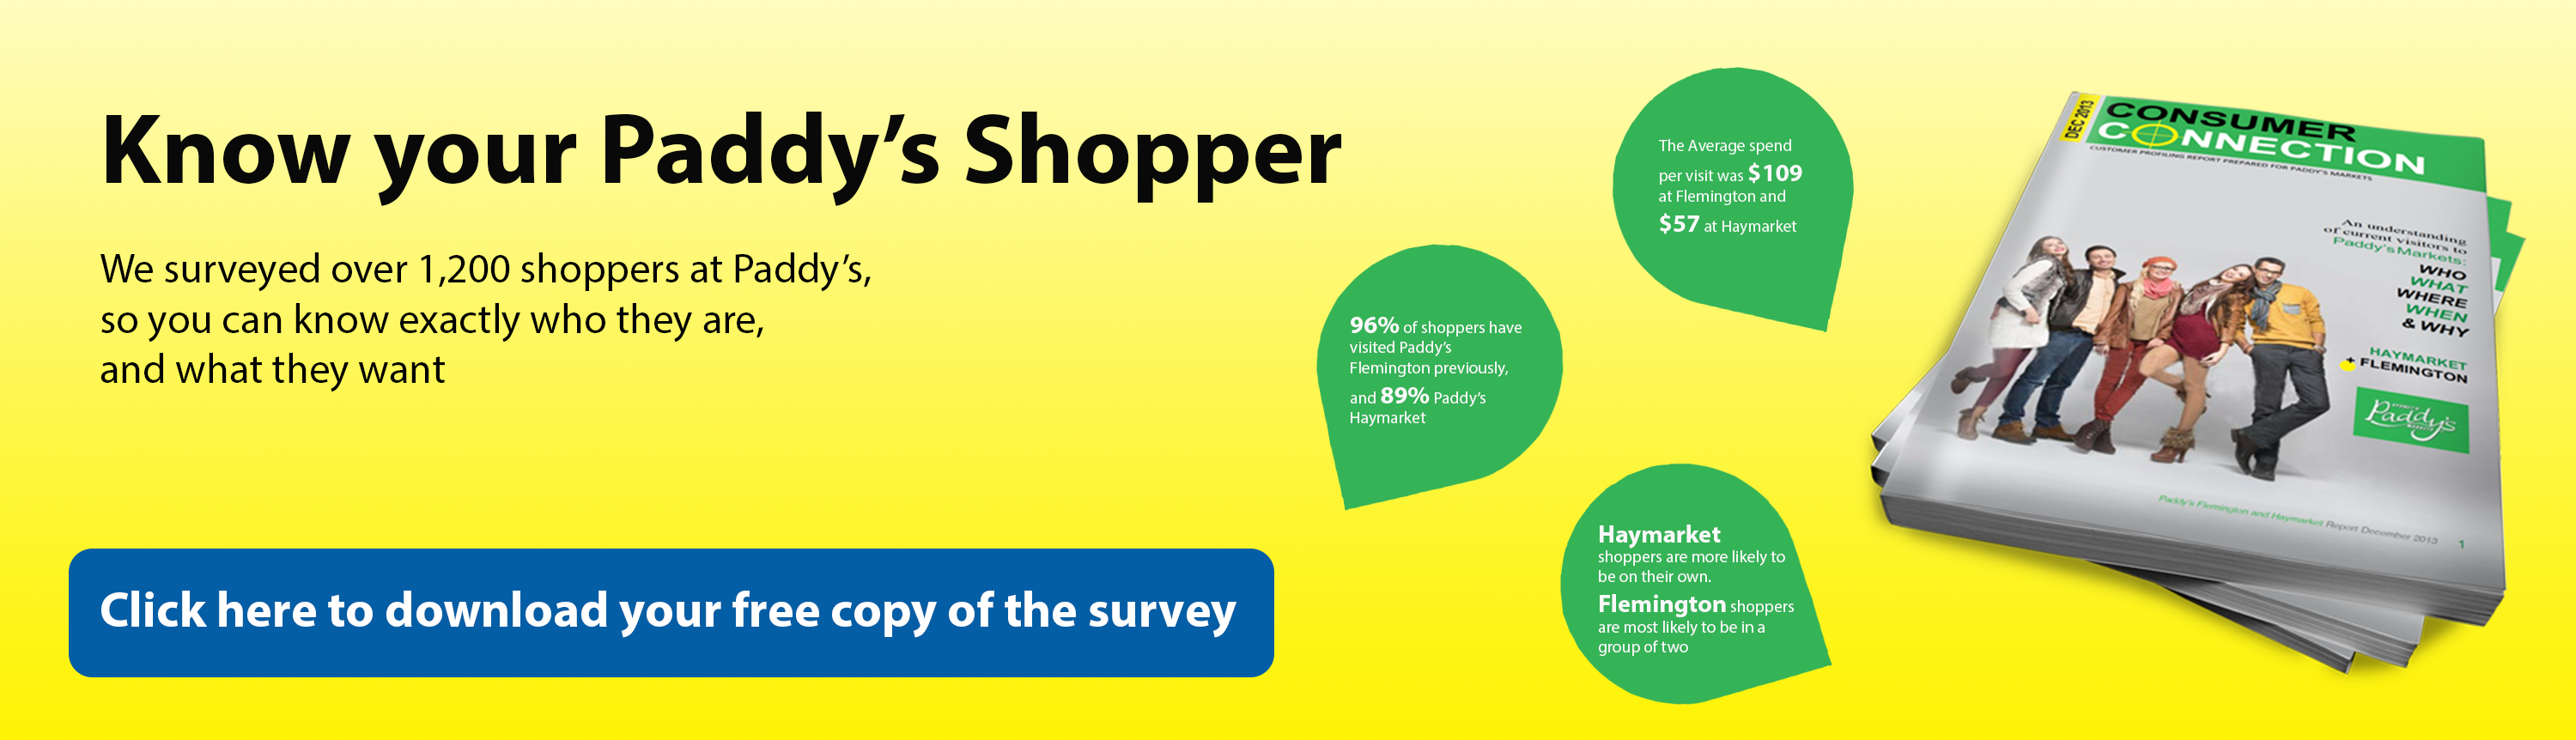 Know your Paddy's shoppers v1